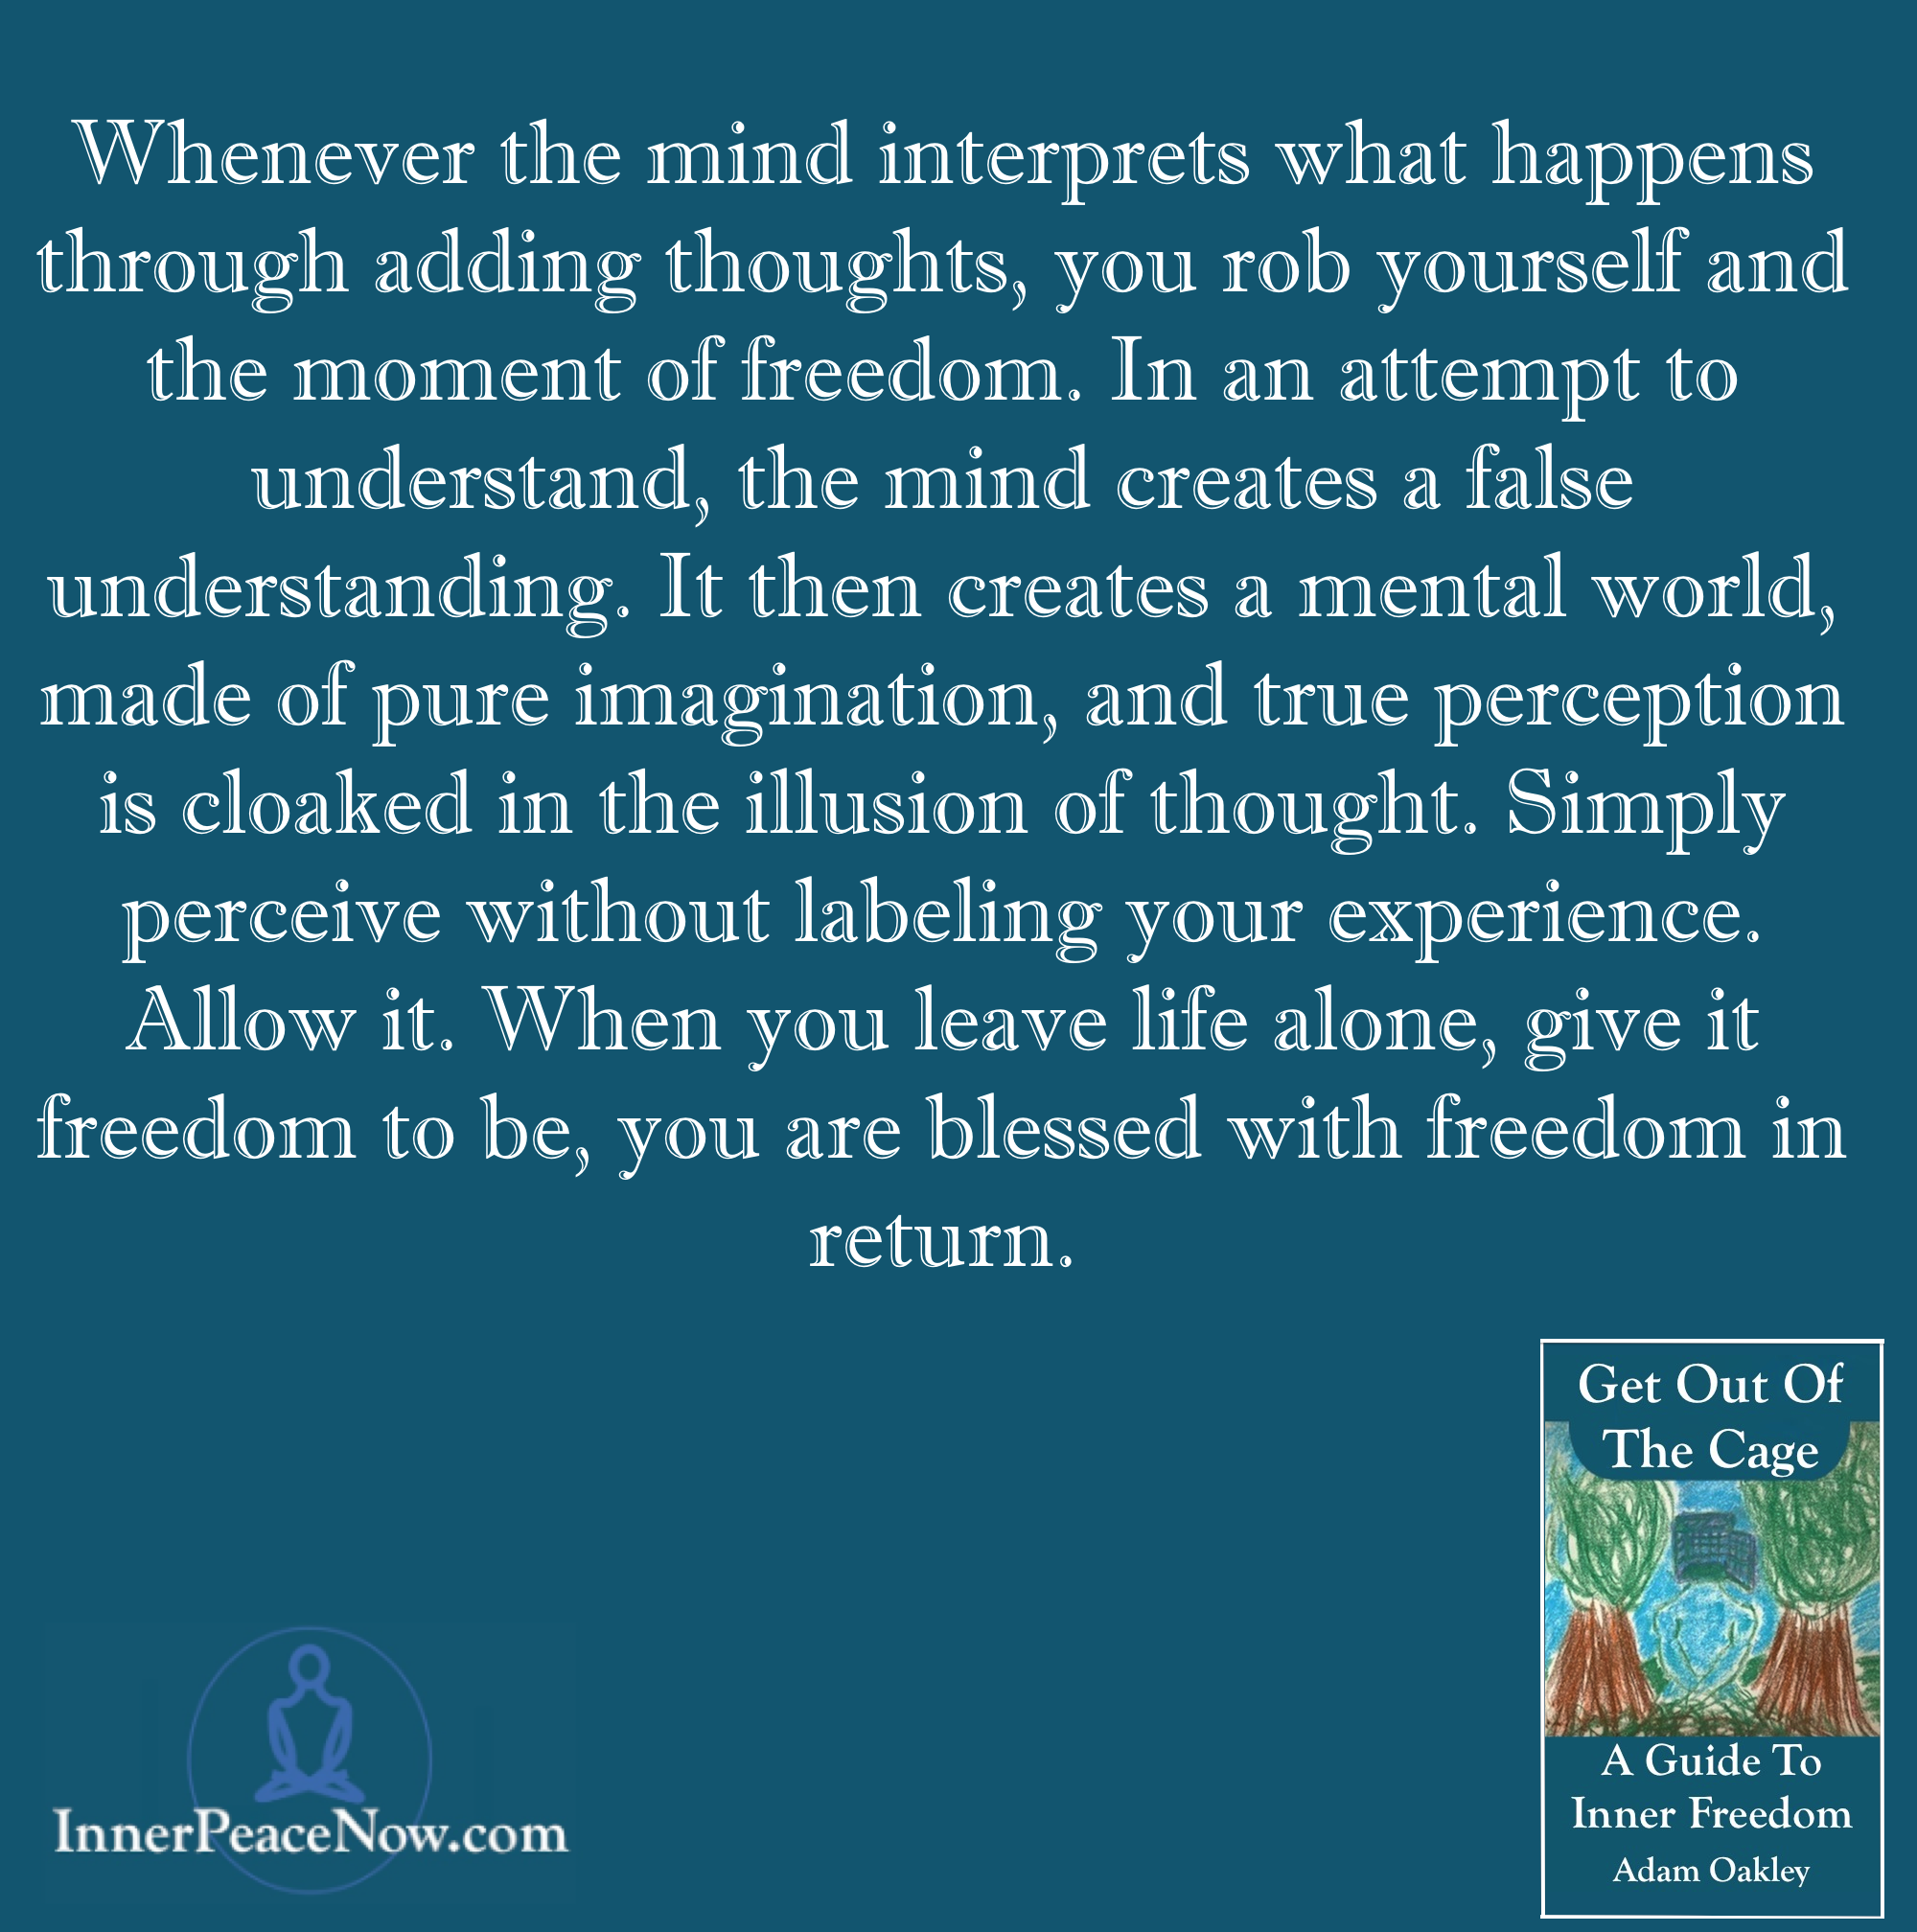 Freedom - Get Out Of The Cage Quote